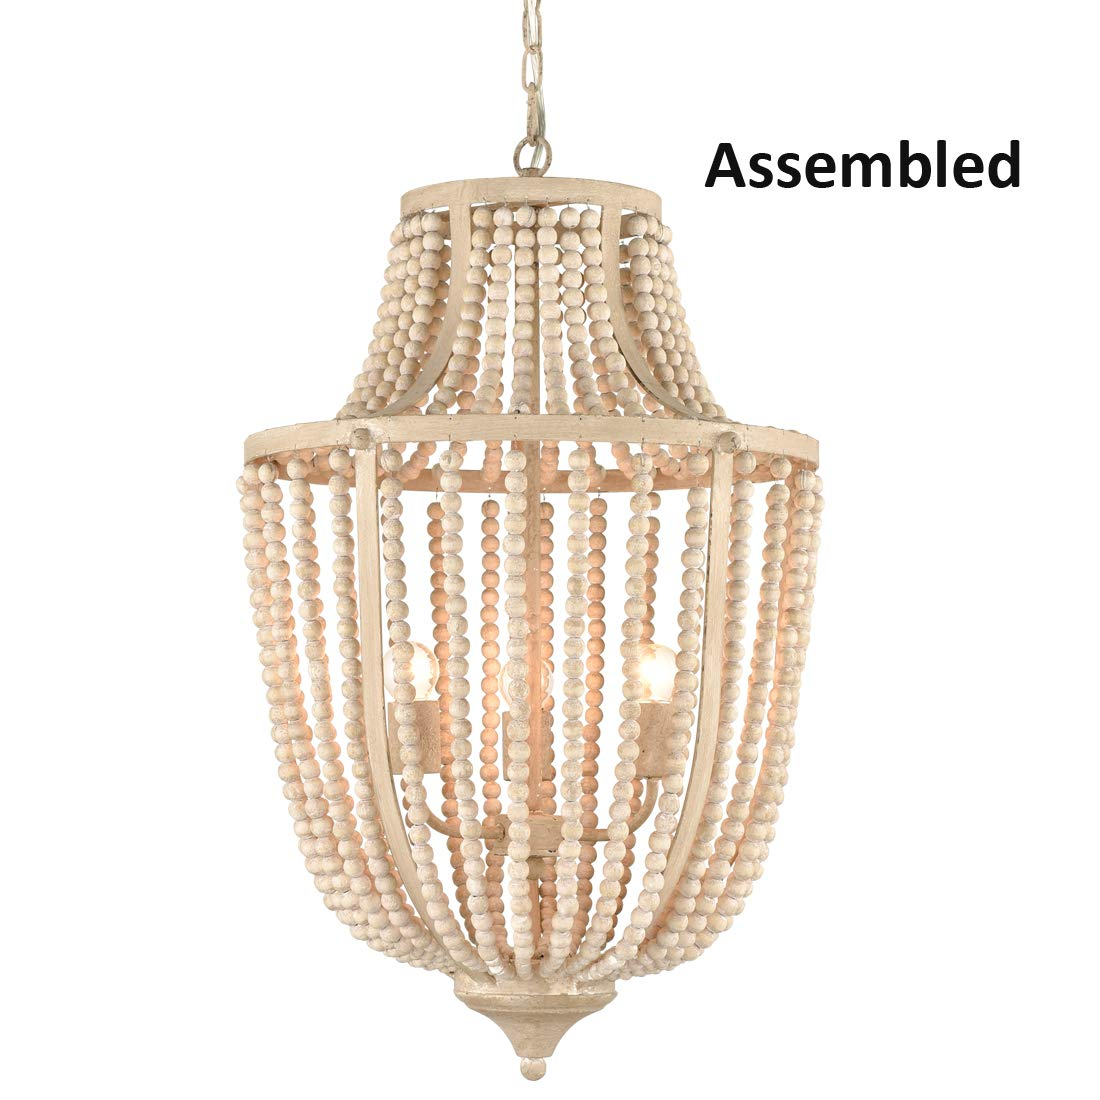 AXILAND Rustic Chandelier 3 Lights Wood Beaded Lights Fixture